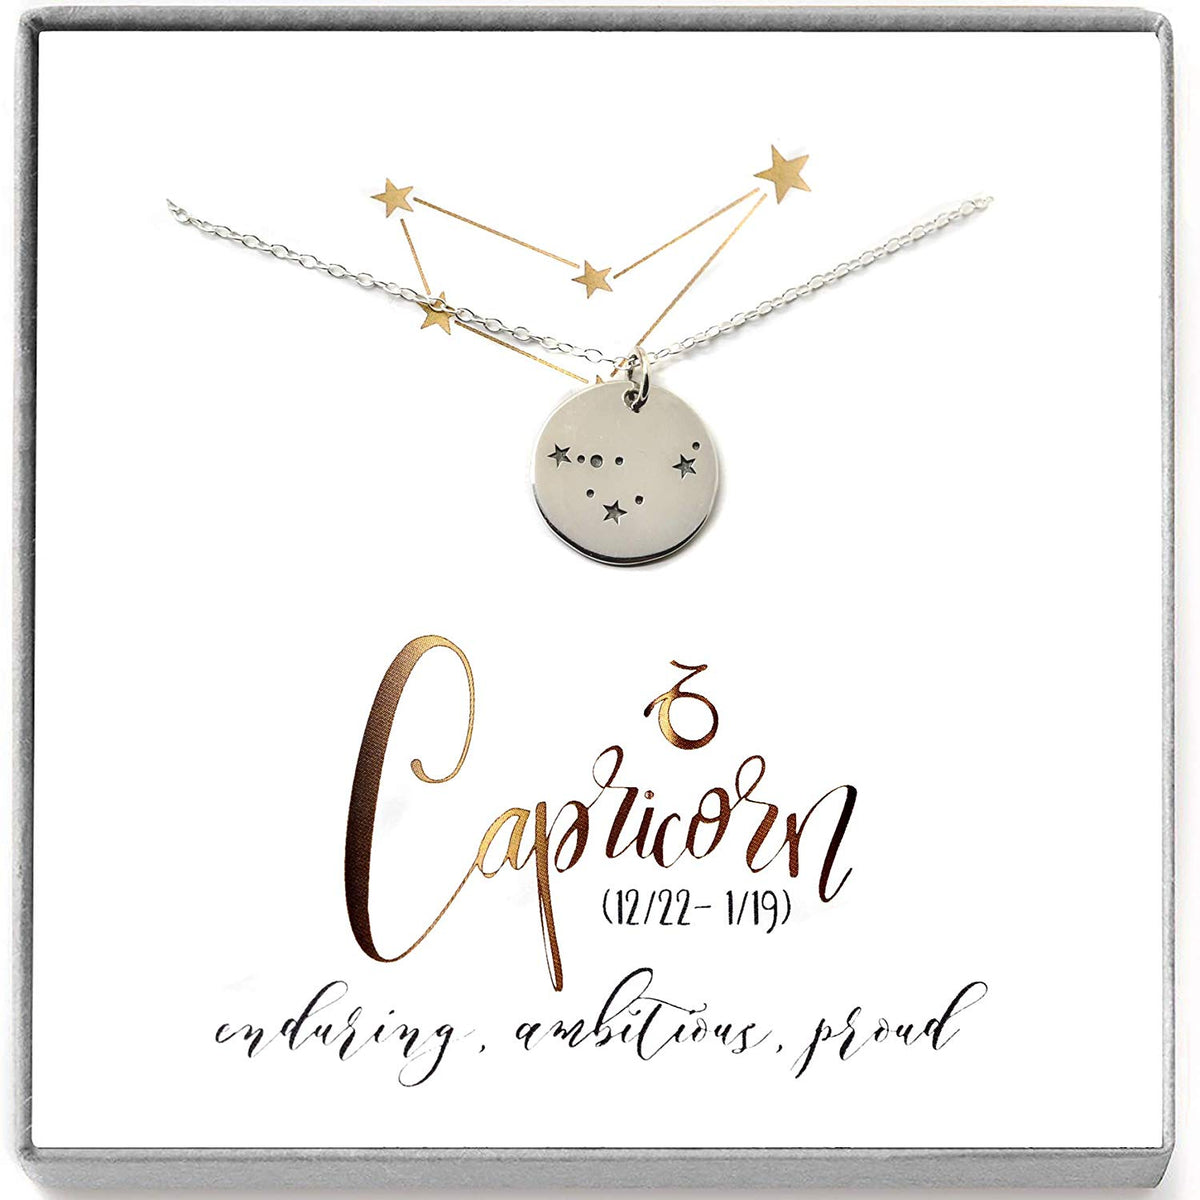 Capricorn Zodiac Sign Sterling Silver Constellation Necklace - Love It Personalized